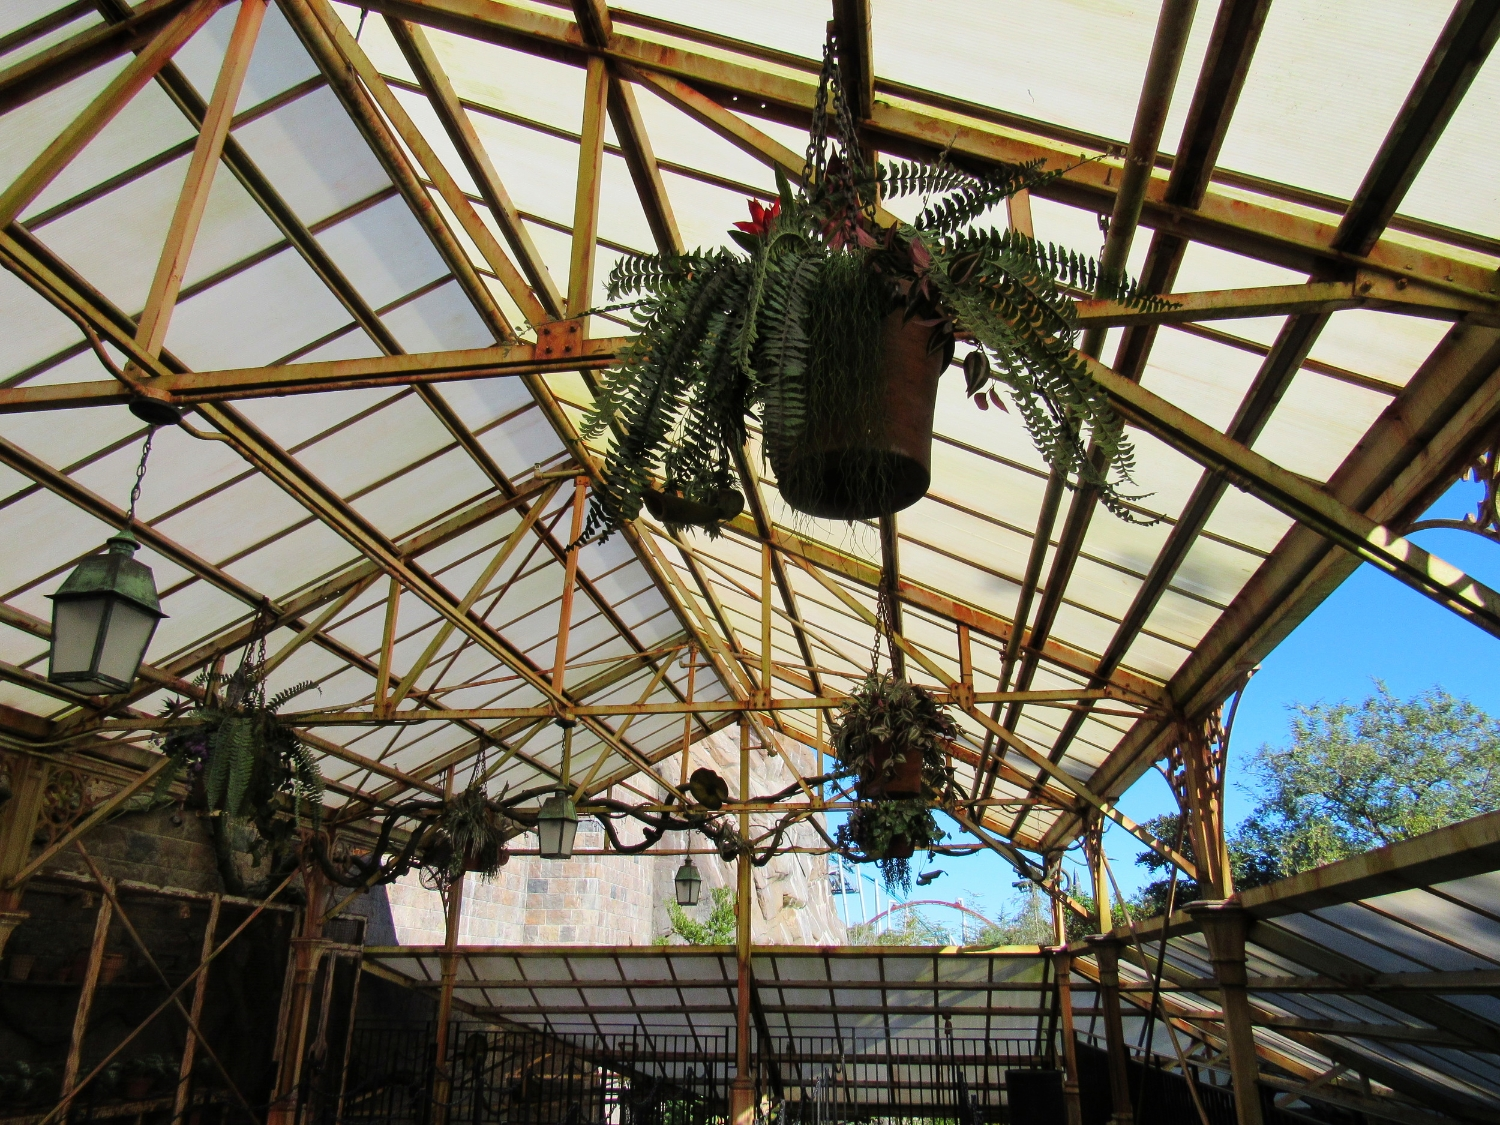 Plants Growing in the Greenhouse in the Forbidden Journey Queue